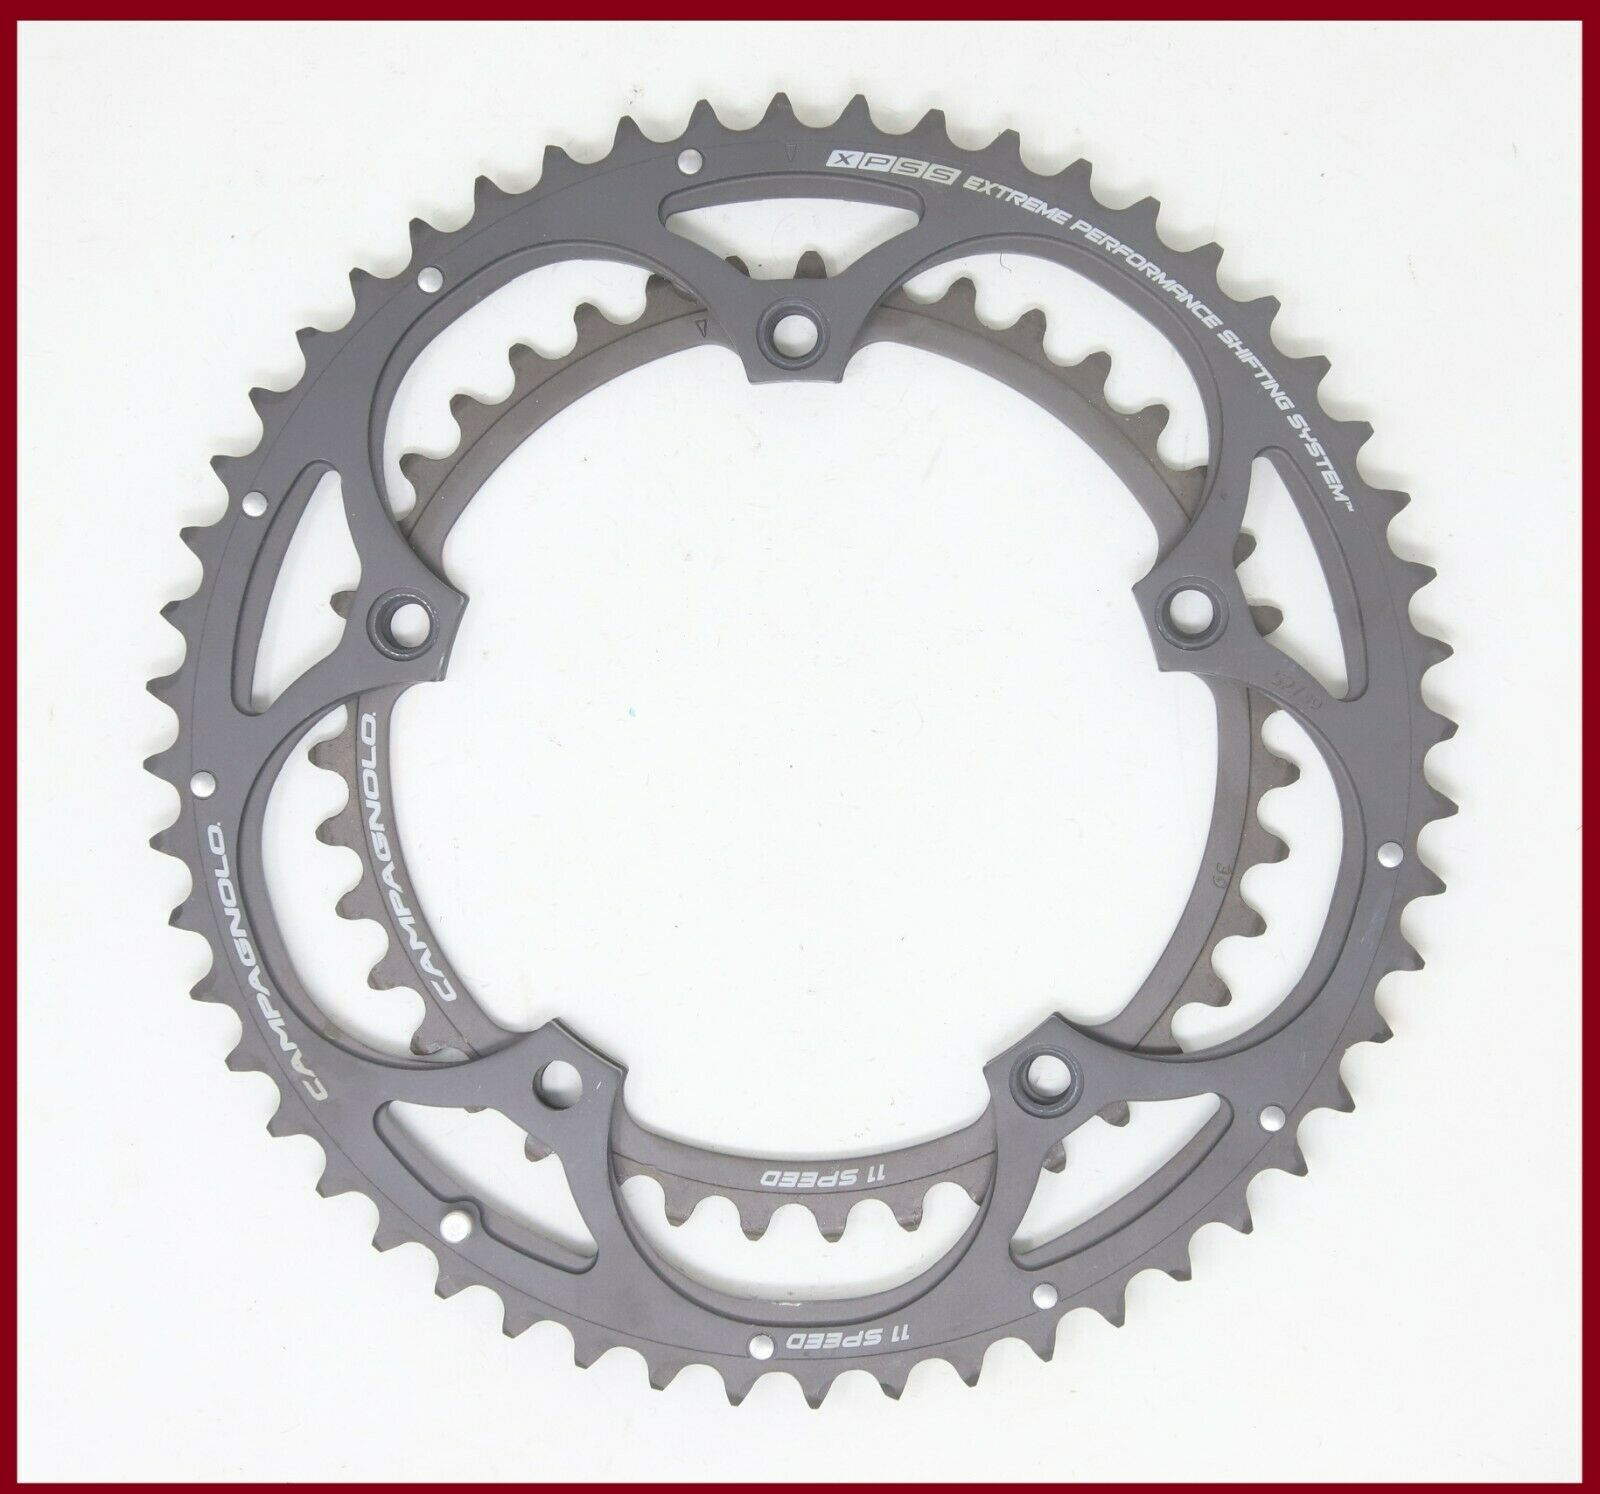 NEW 11sp CAMPAGNOLO SUPER RECORD 52 39 EPSS CHAINRINGS 11 SPEED 119 grams CHORUS